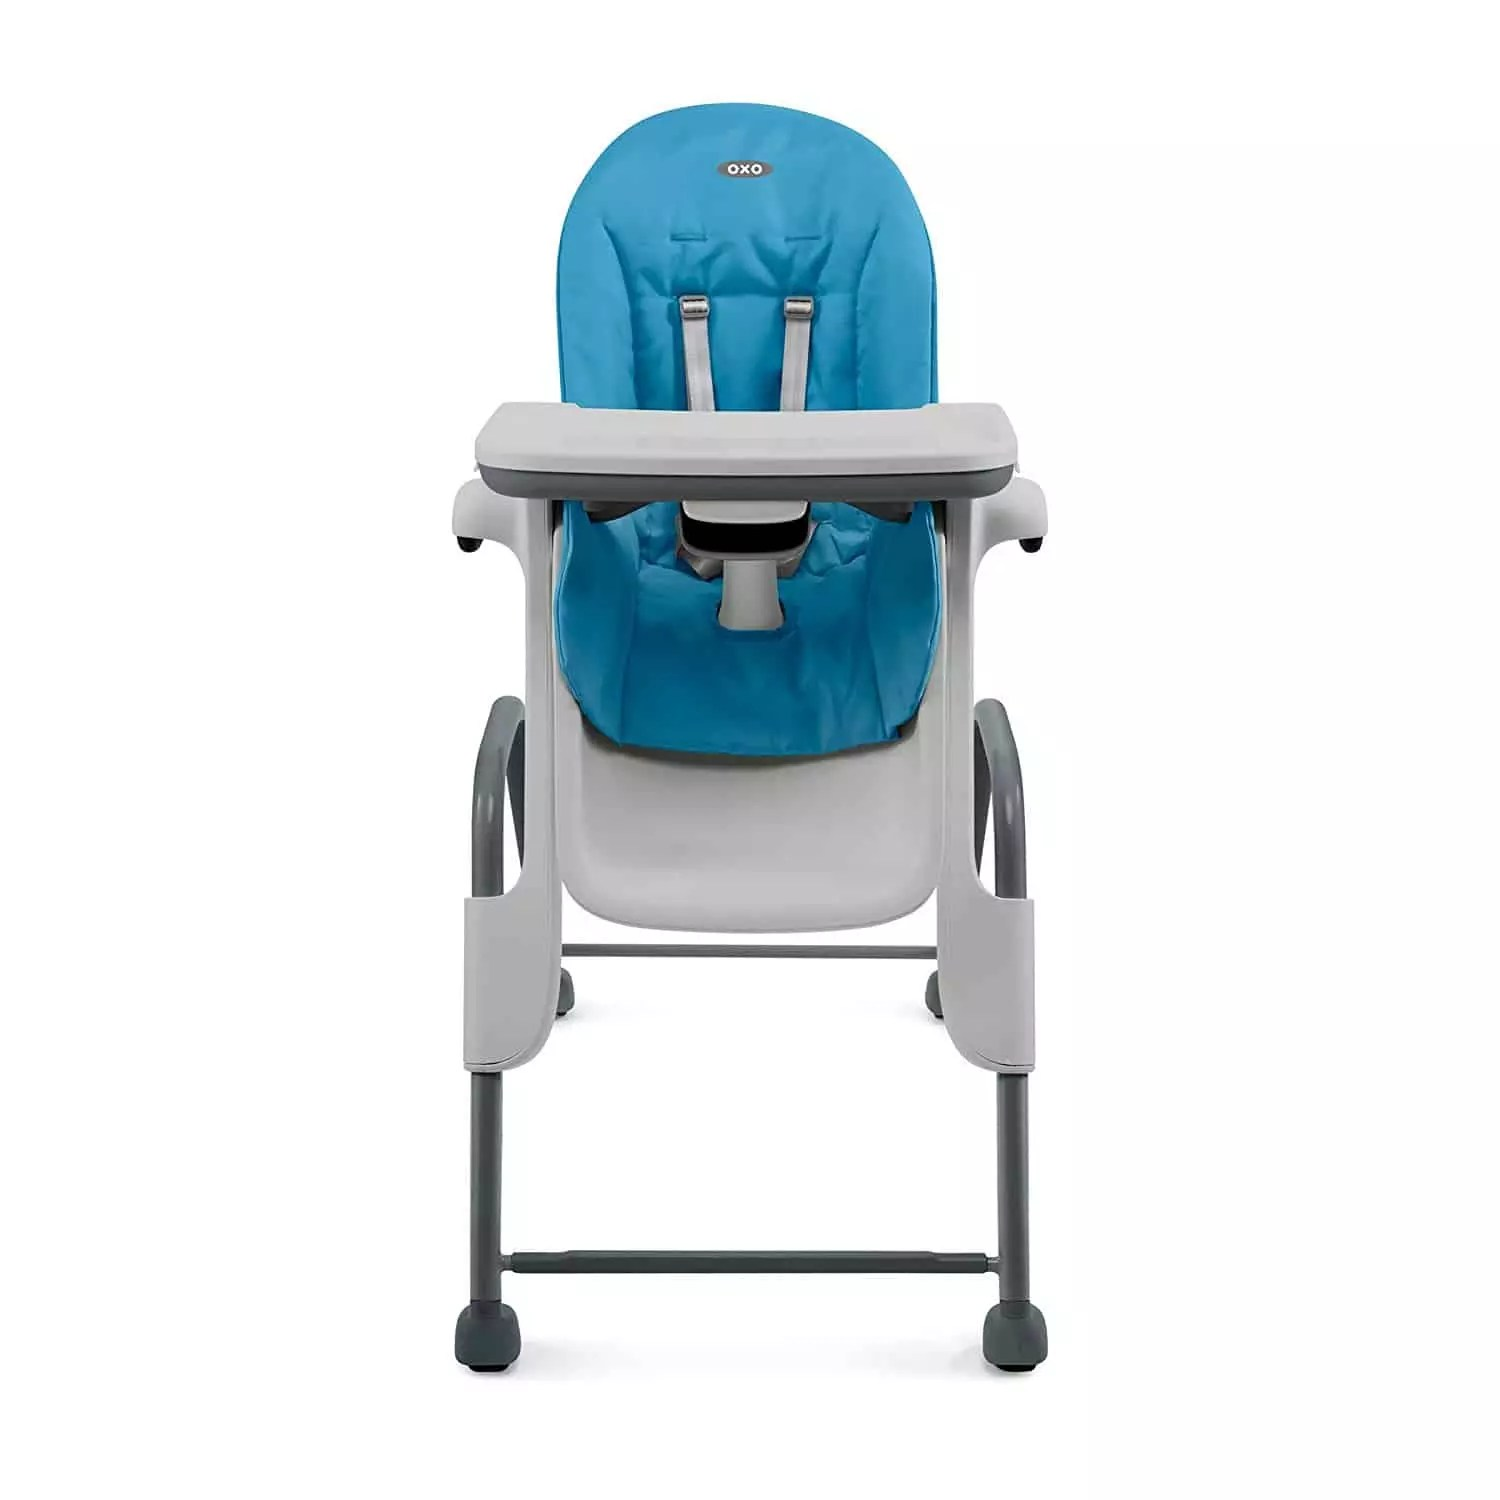 toys are us baby high chairs folding adirondack rocking chair plans brand review oxo tot bargains seedling